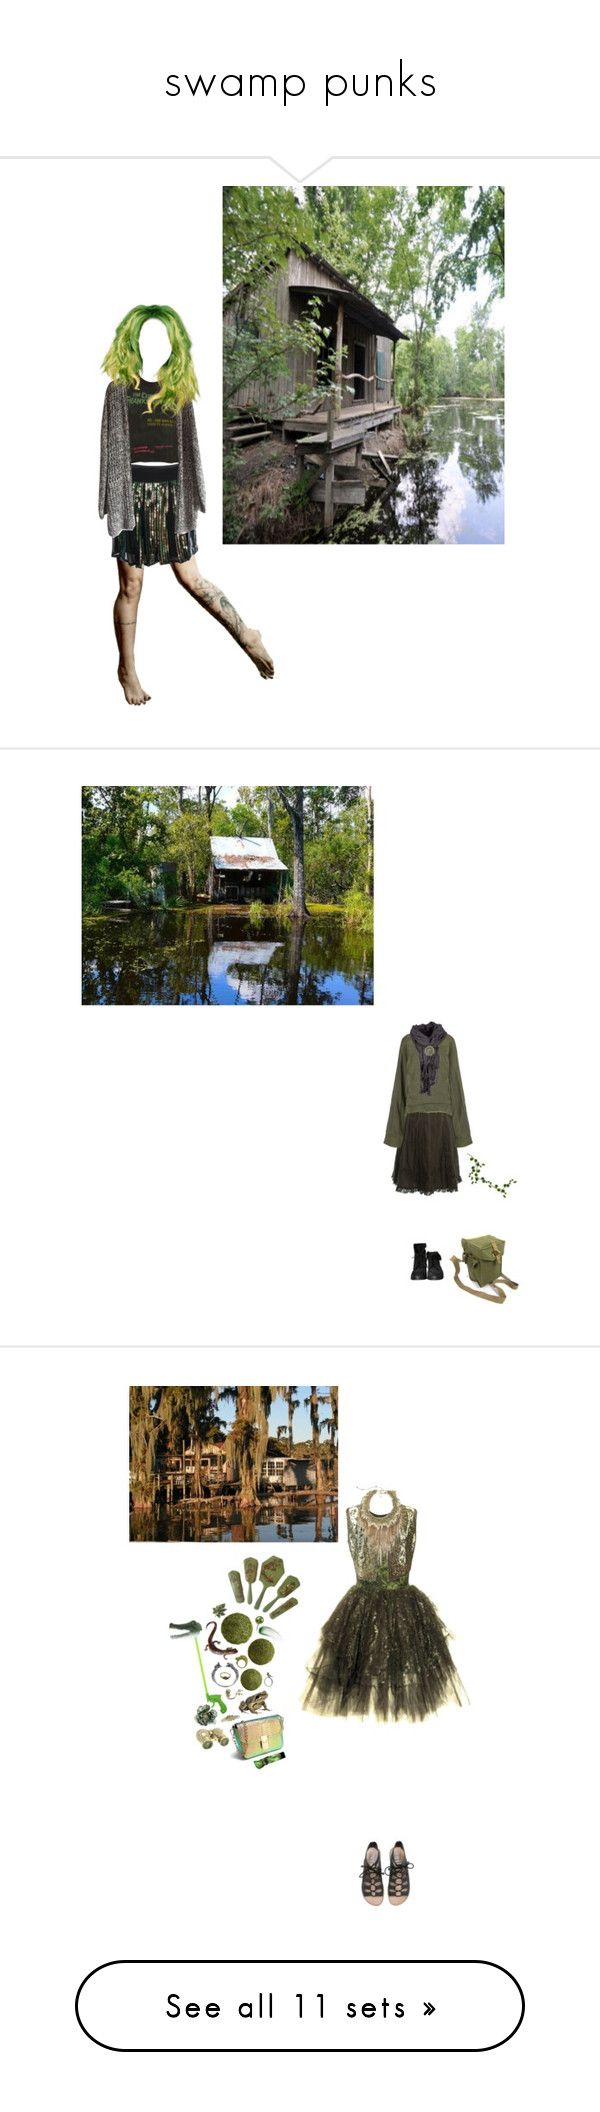 """swamp punks"" by mermaid-nielsine ❤ liked on Polyvore featuring swamp, BOSS Orange, Haider Ackermann, Zara, GAS Jeans, Cyan Design, Kieselstein-Cord, Lipstick Queen, Bernard Delettrez and Aesop"